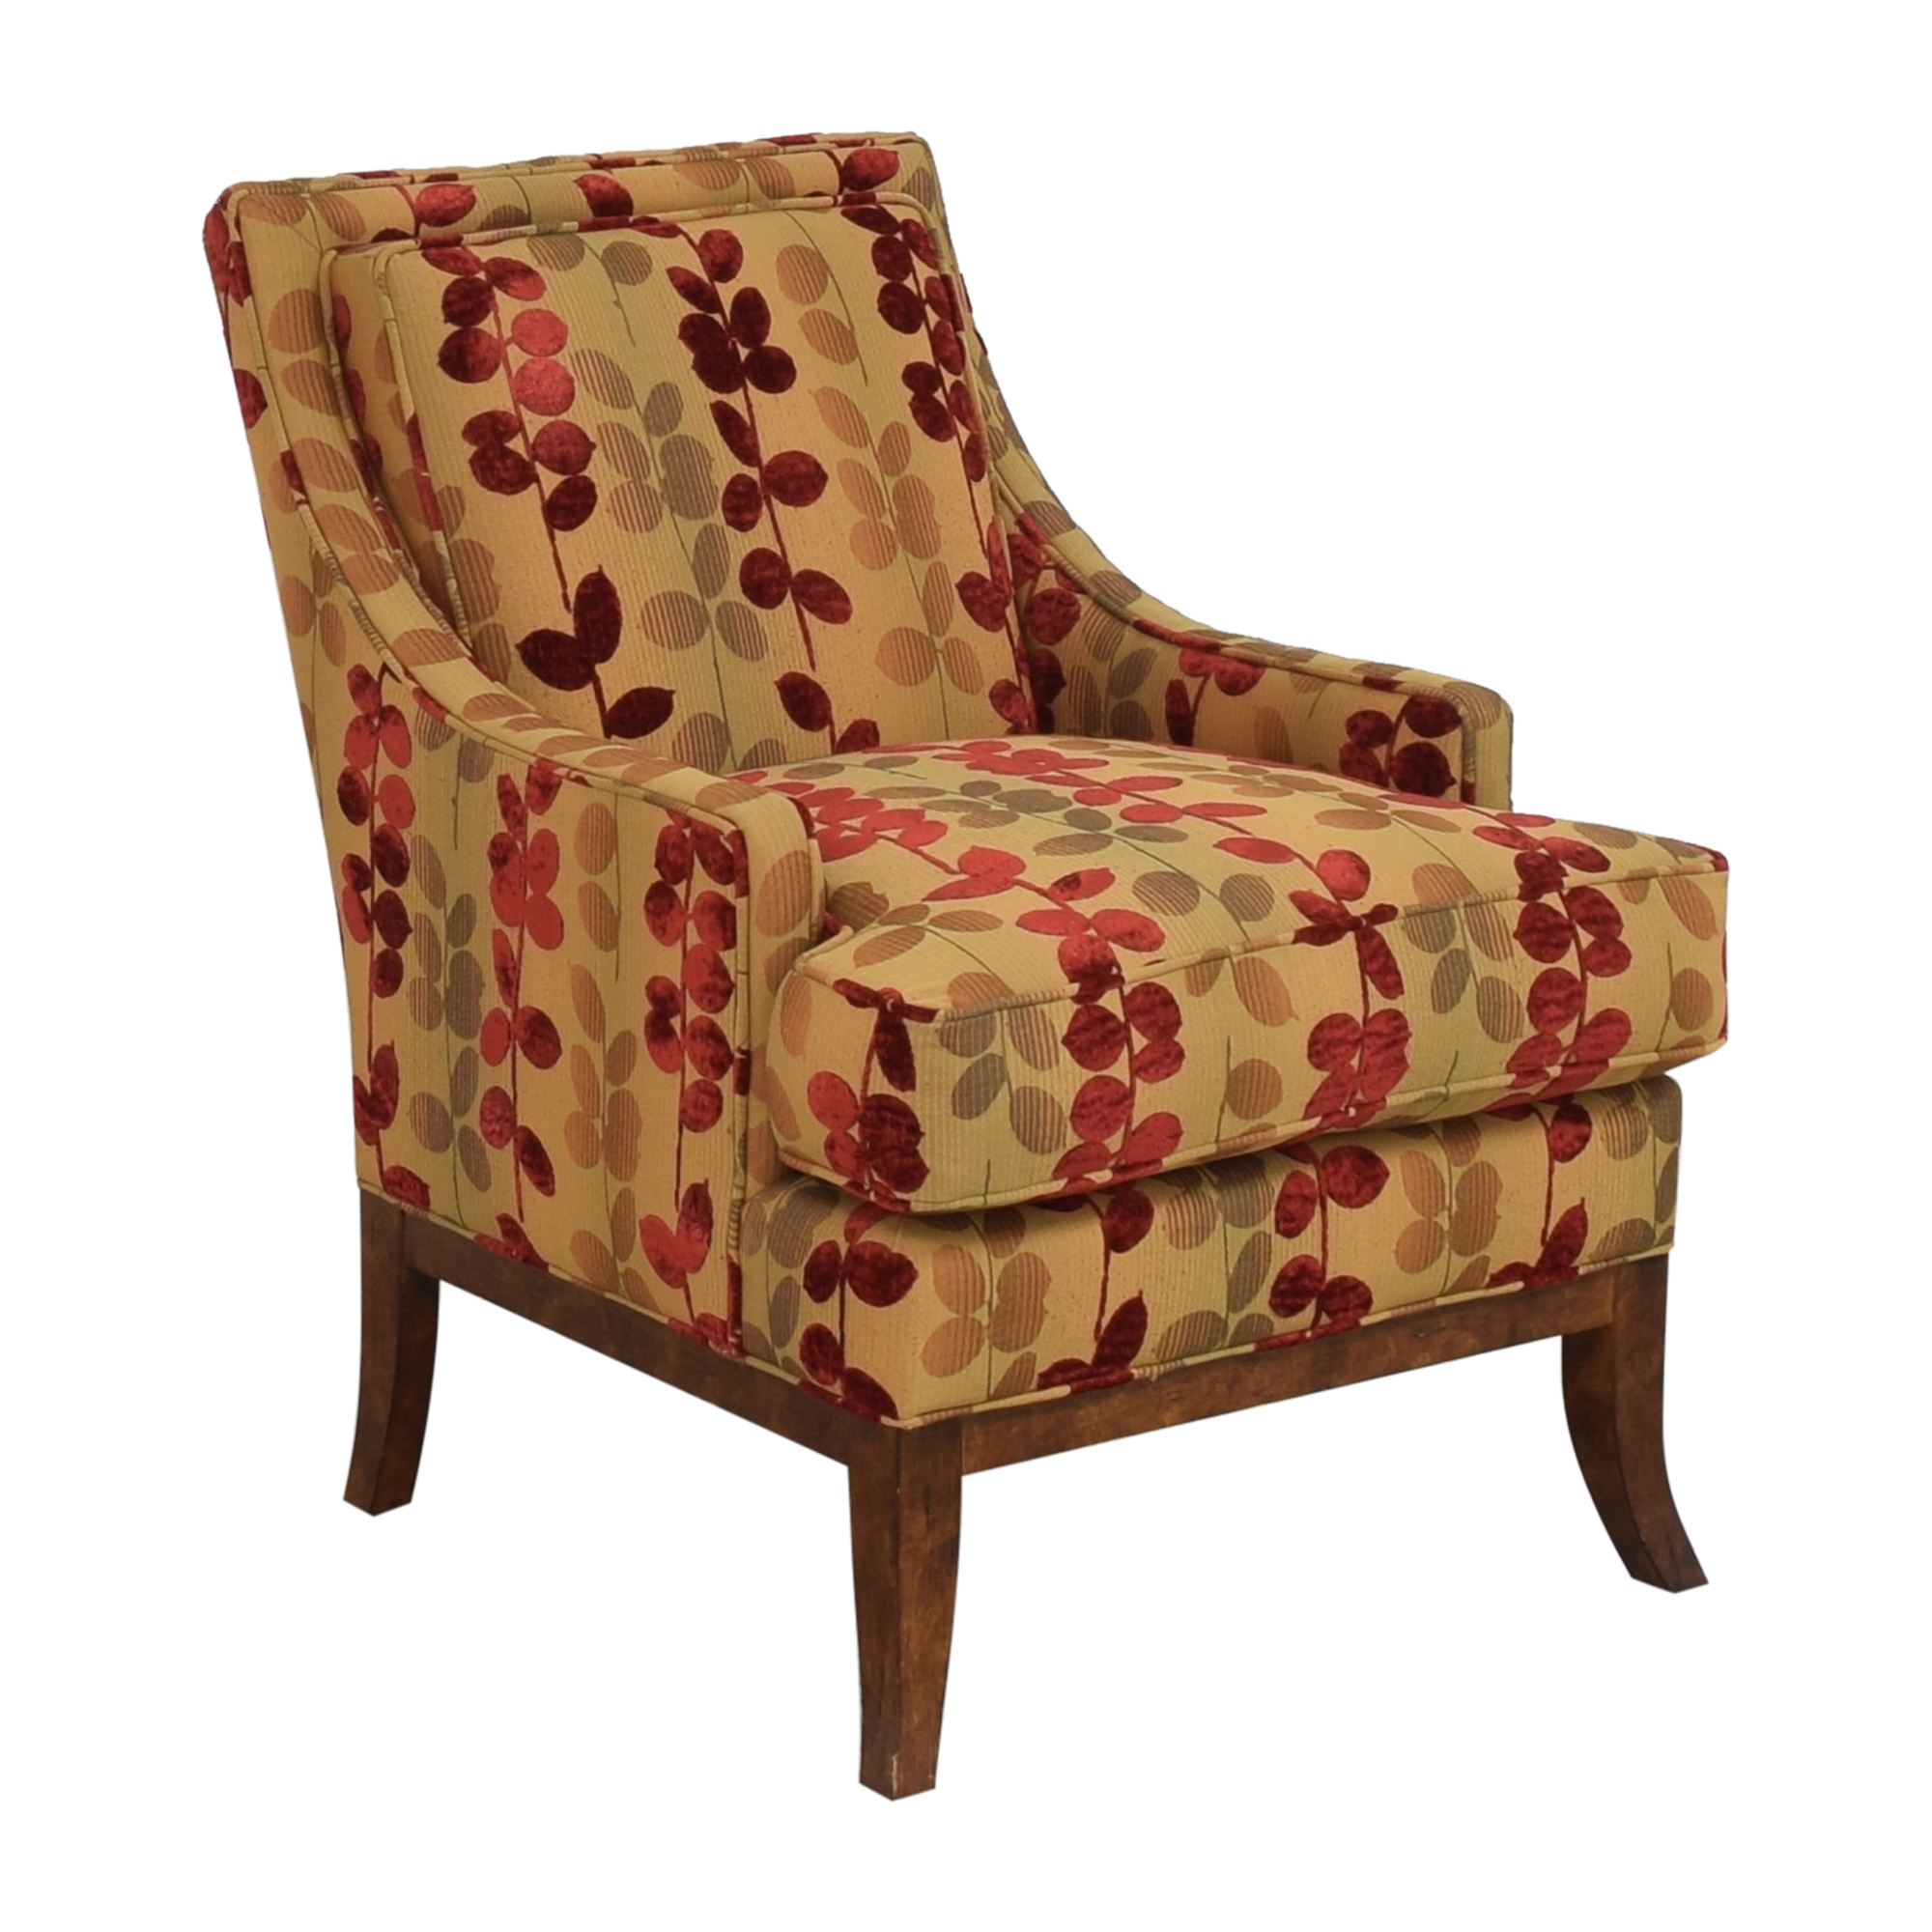 Highland House Furniture Highland House Furniture Corey Chair Accent Chairs